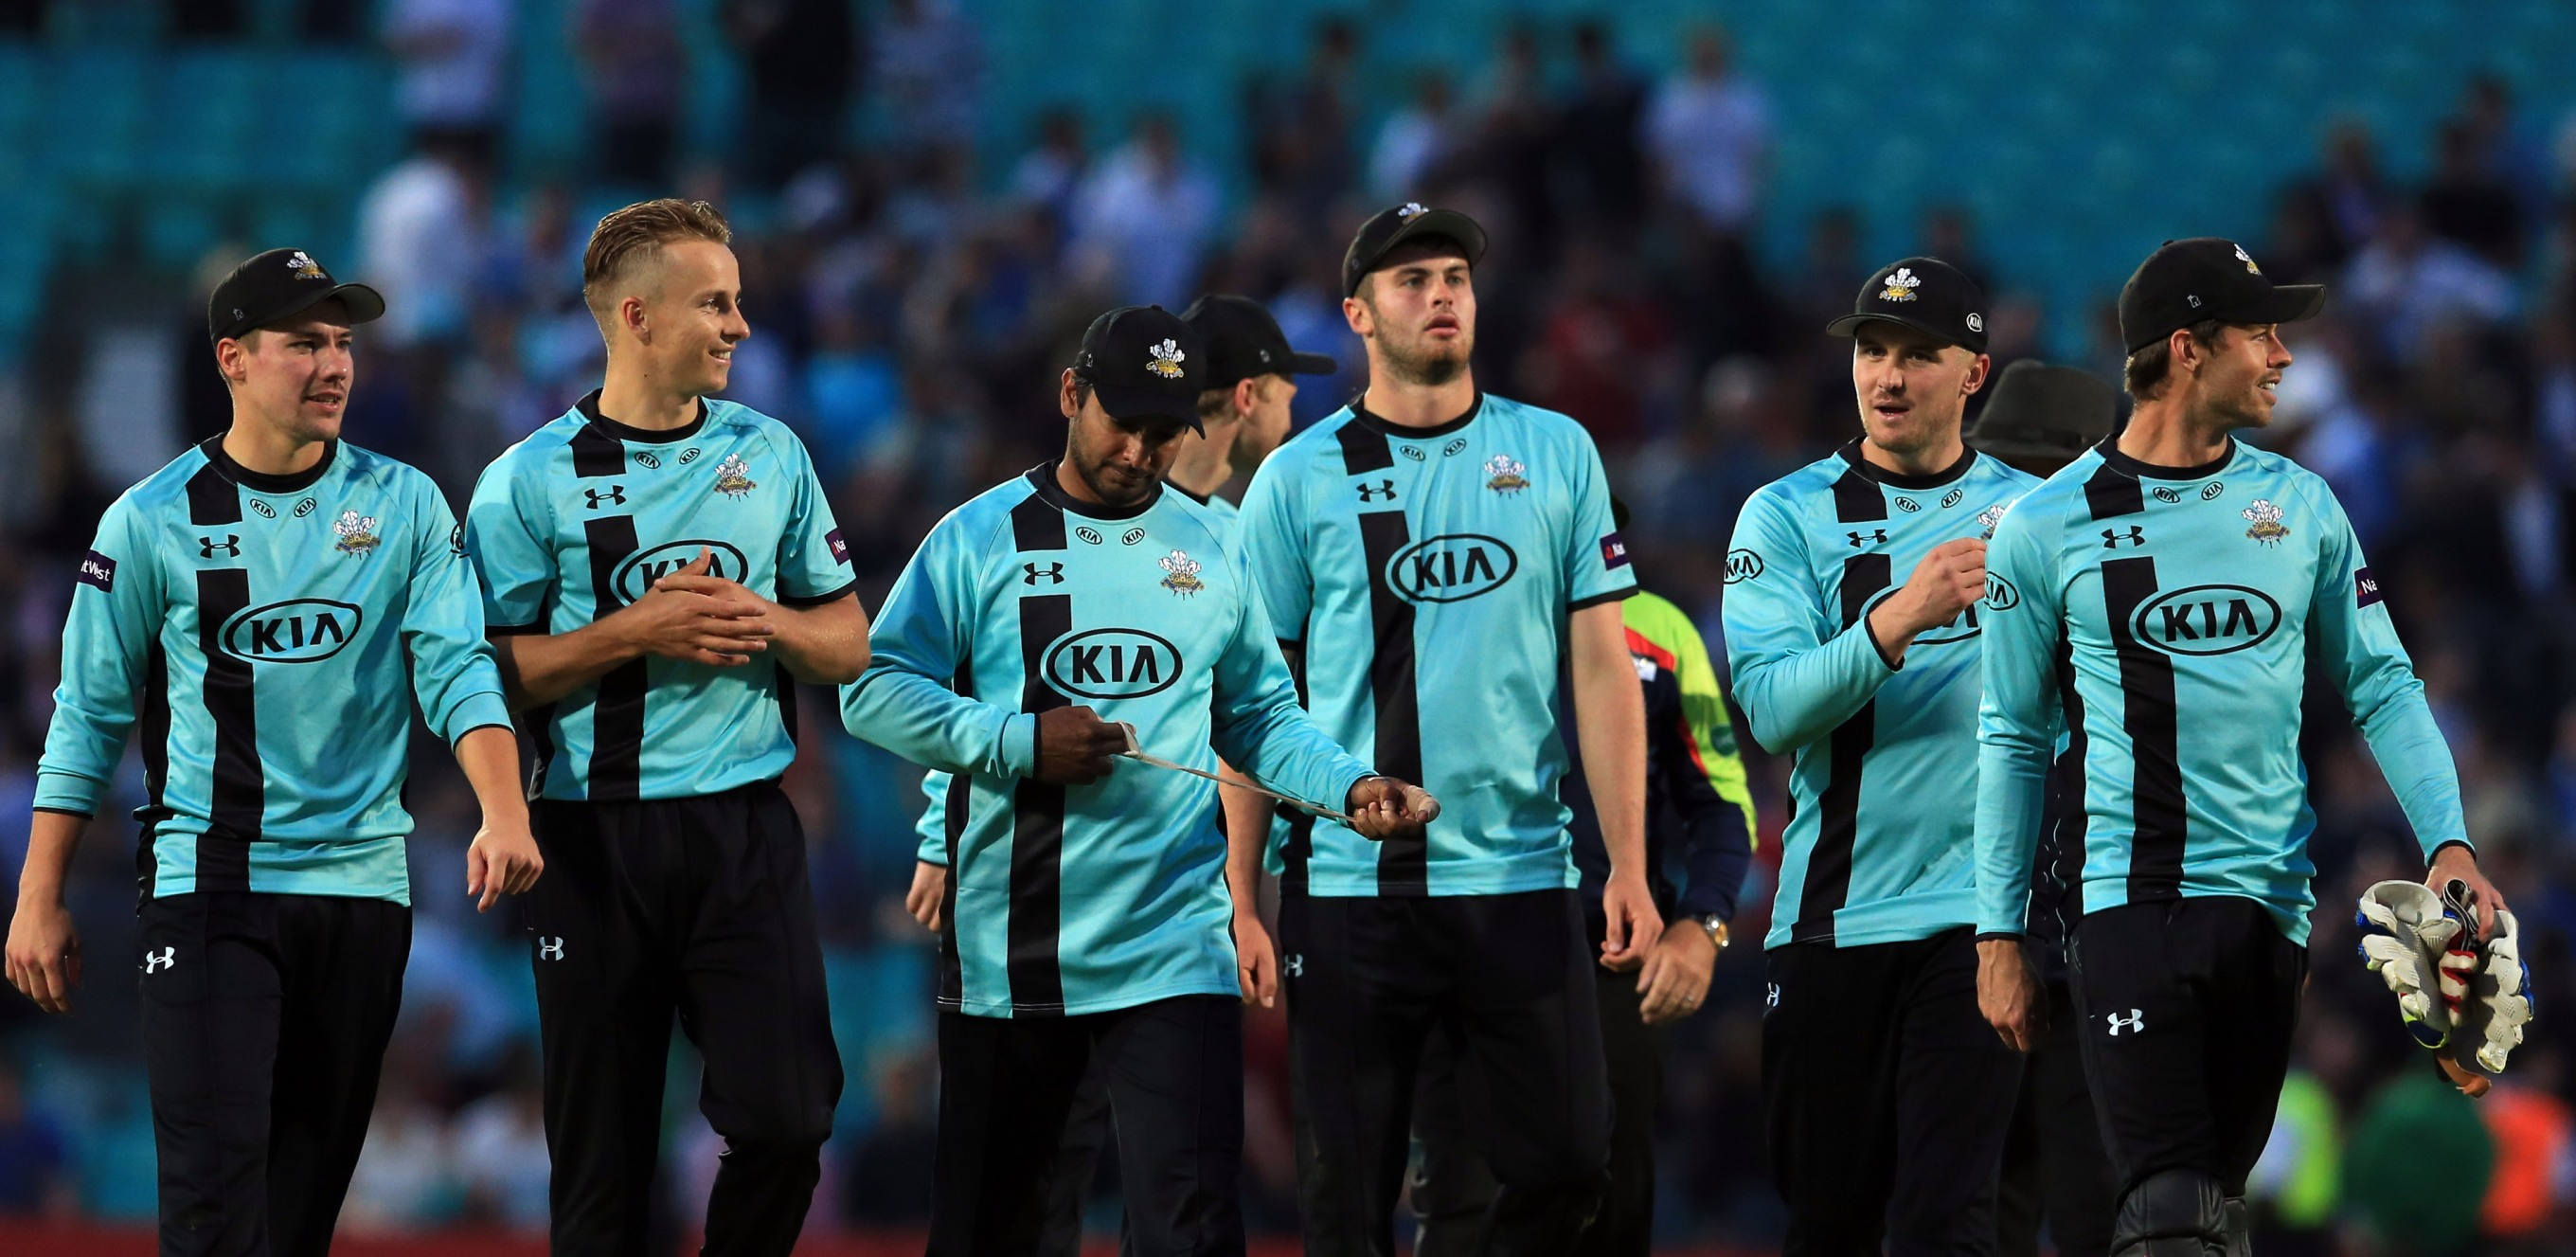 Surrey v Hampshire - NatWest T20 Blast - The Kia Oval